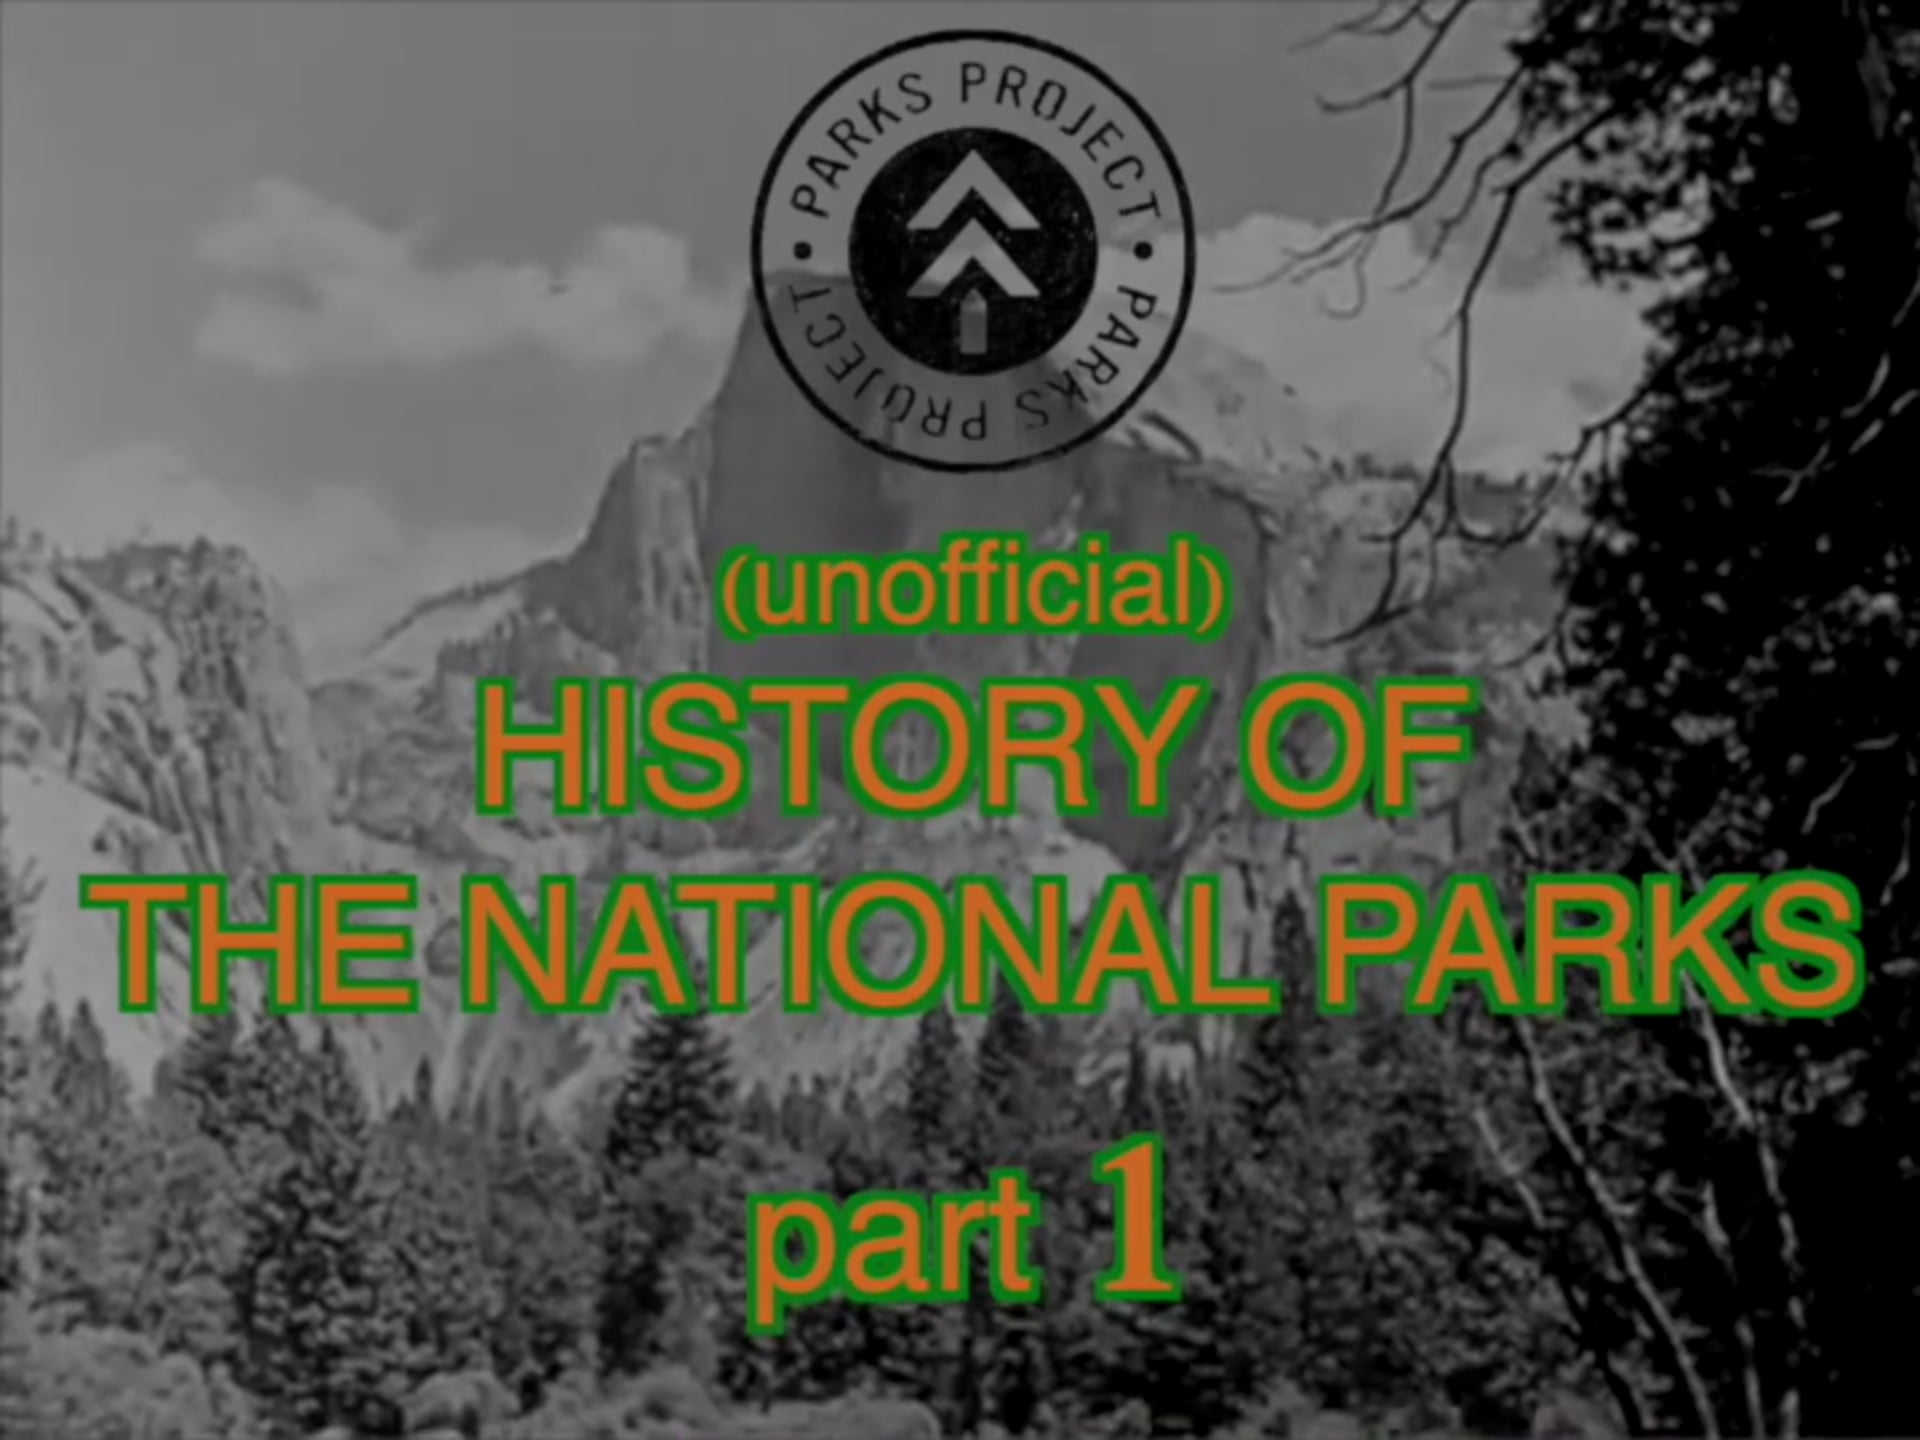 (unofficial) HISTORY OF THE NATIONAL PARKS thumbnail